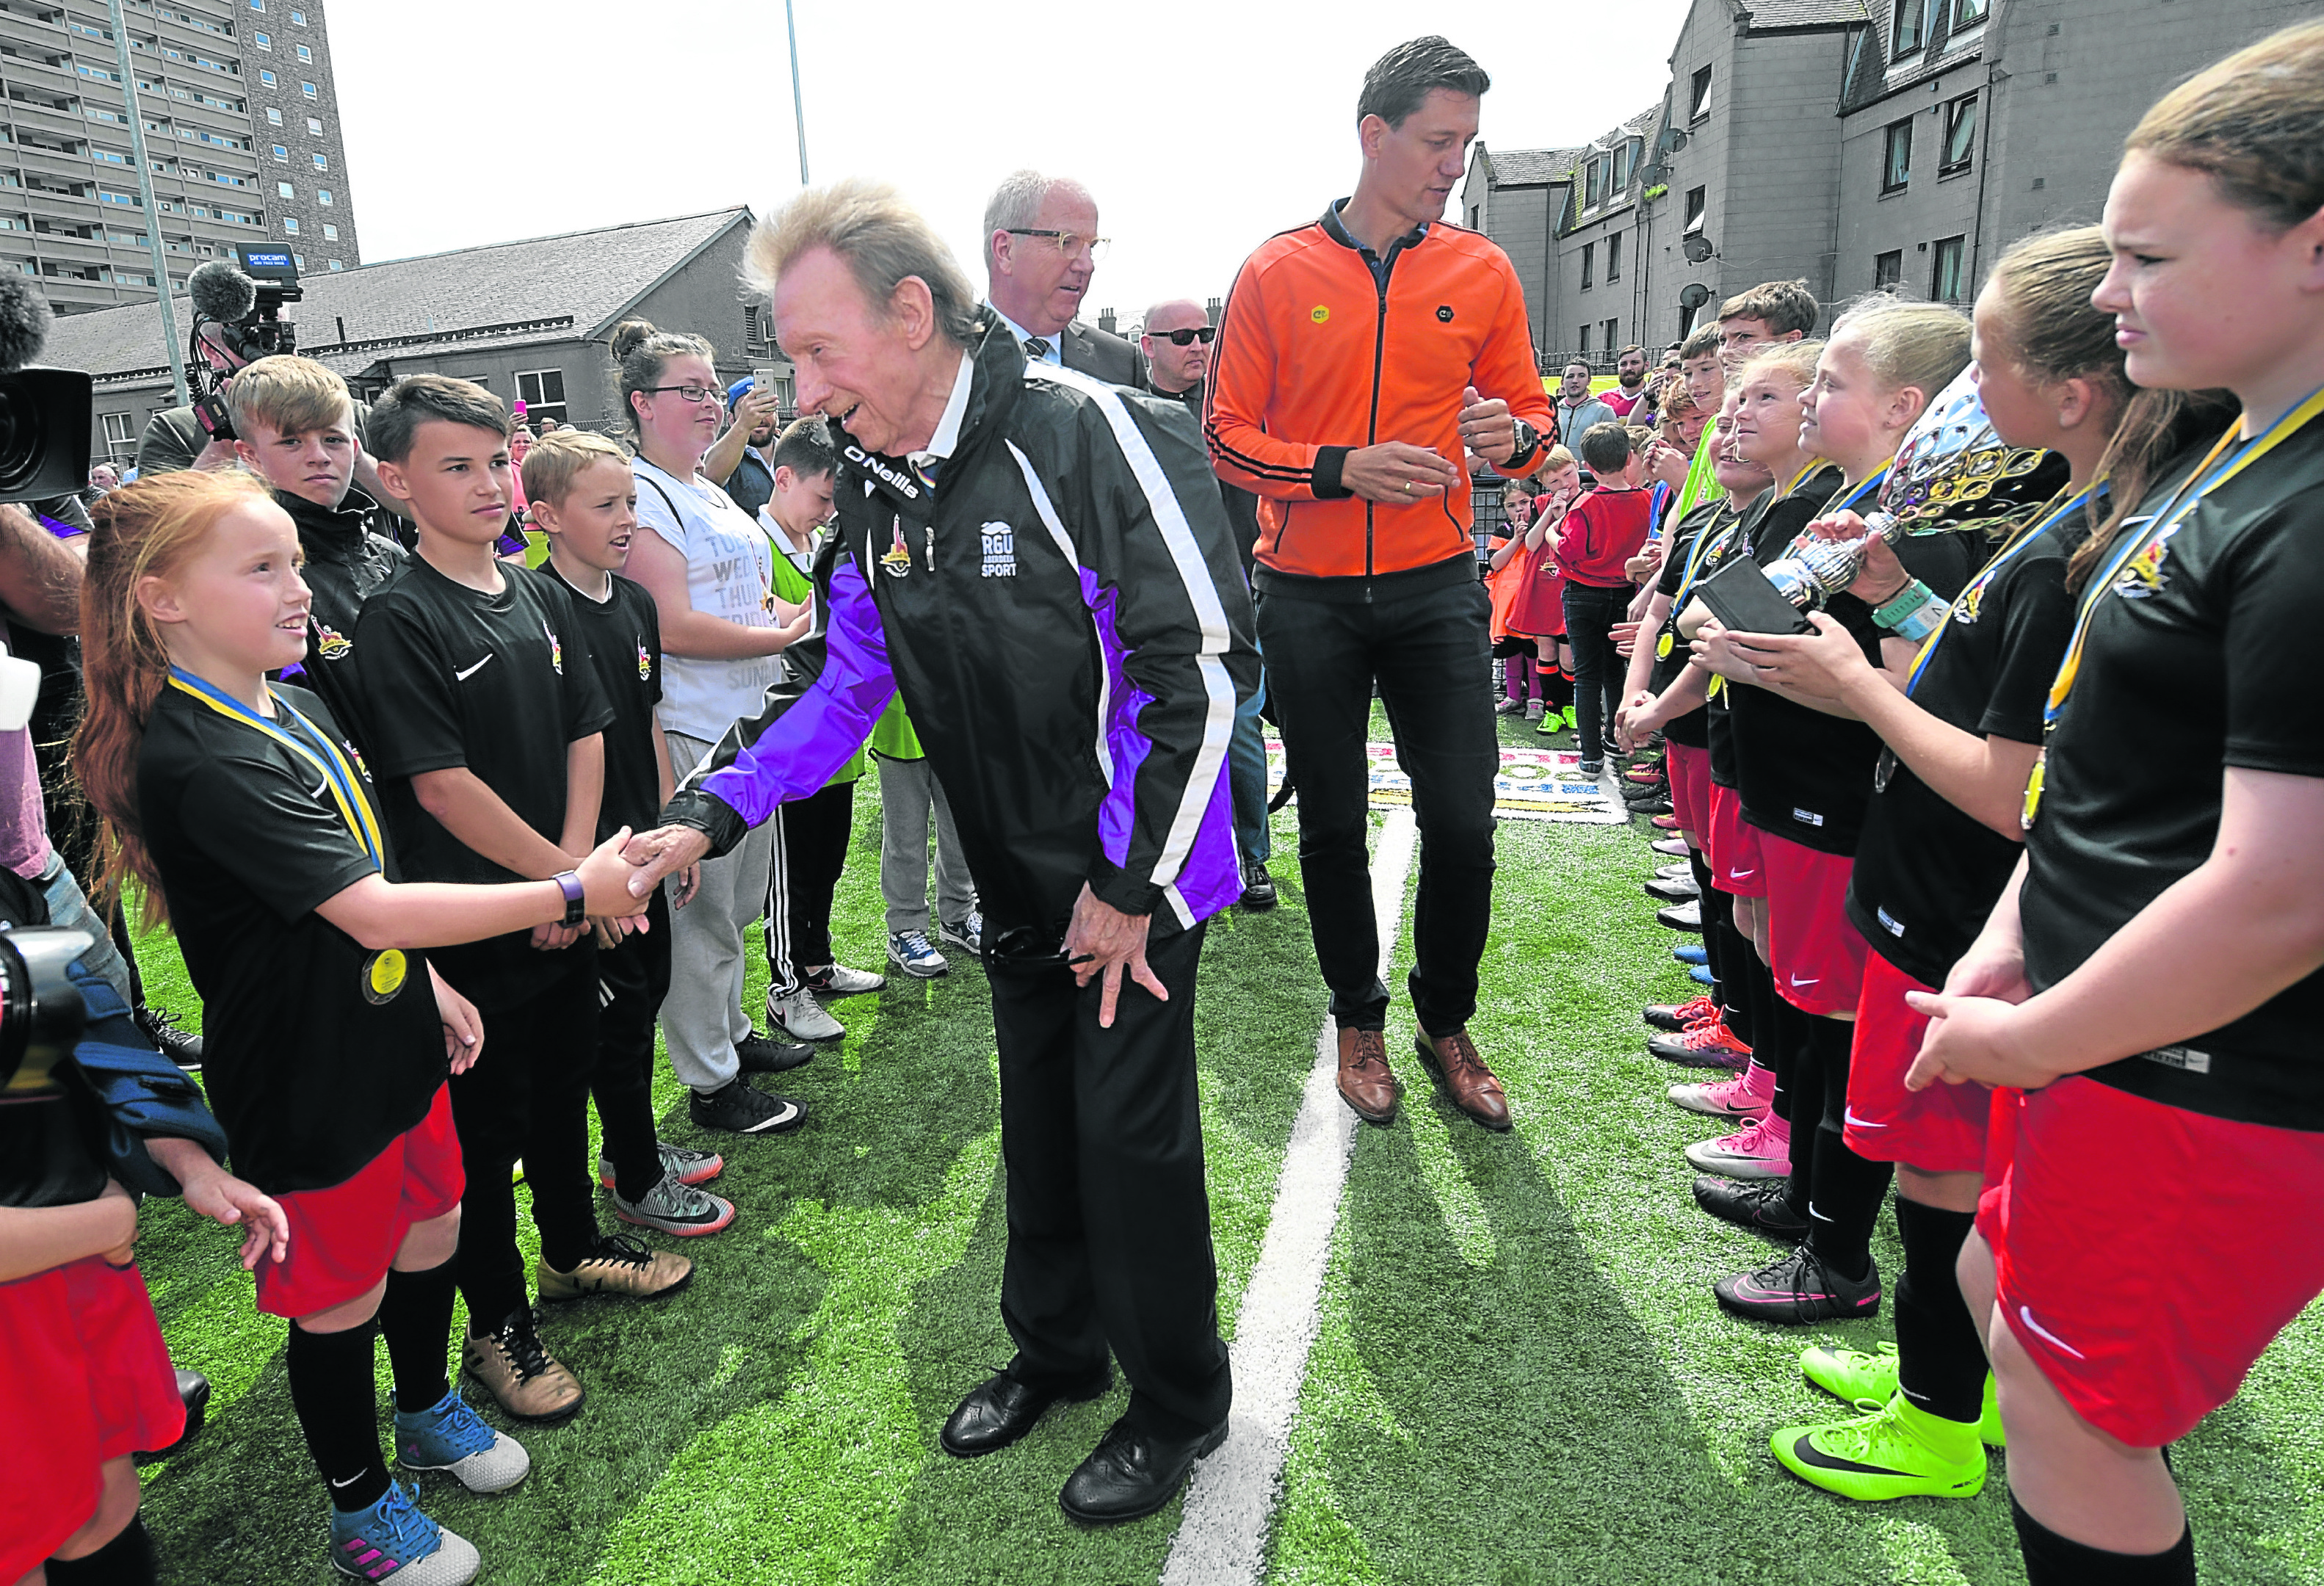 Denis Law opened the city's first Cruyff Court